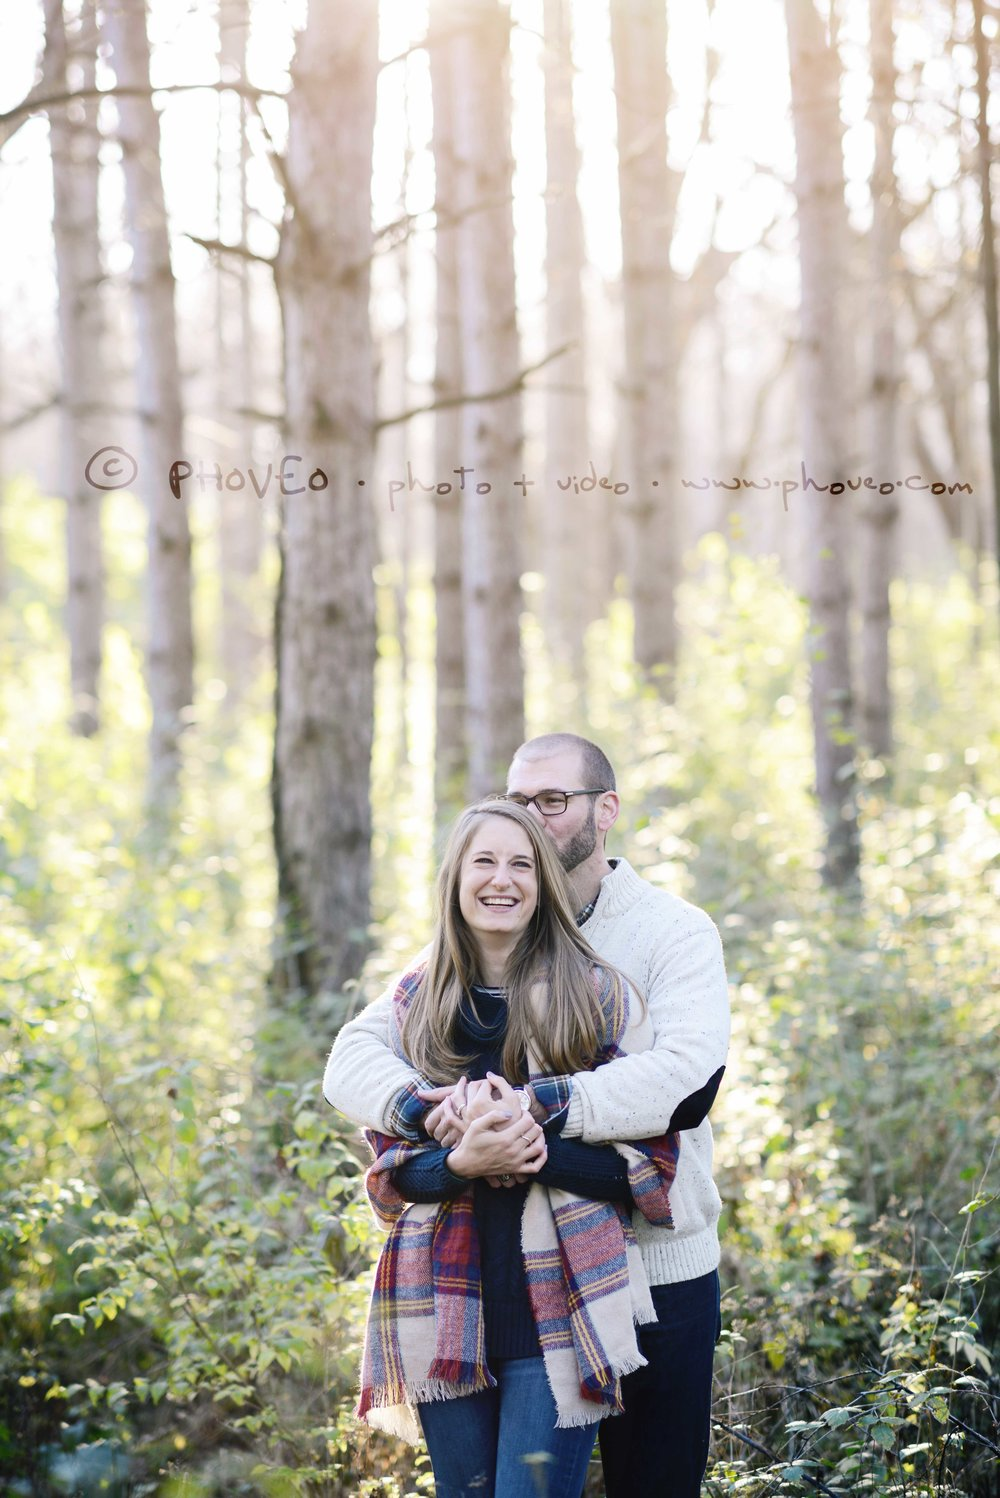 WM_20161113_Lauren+Sean_34.jpg